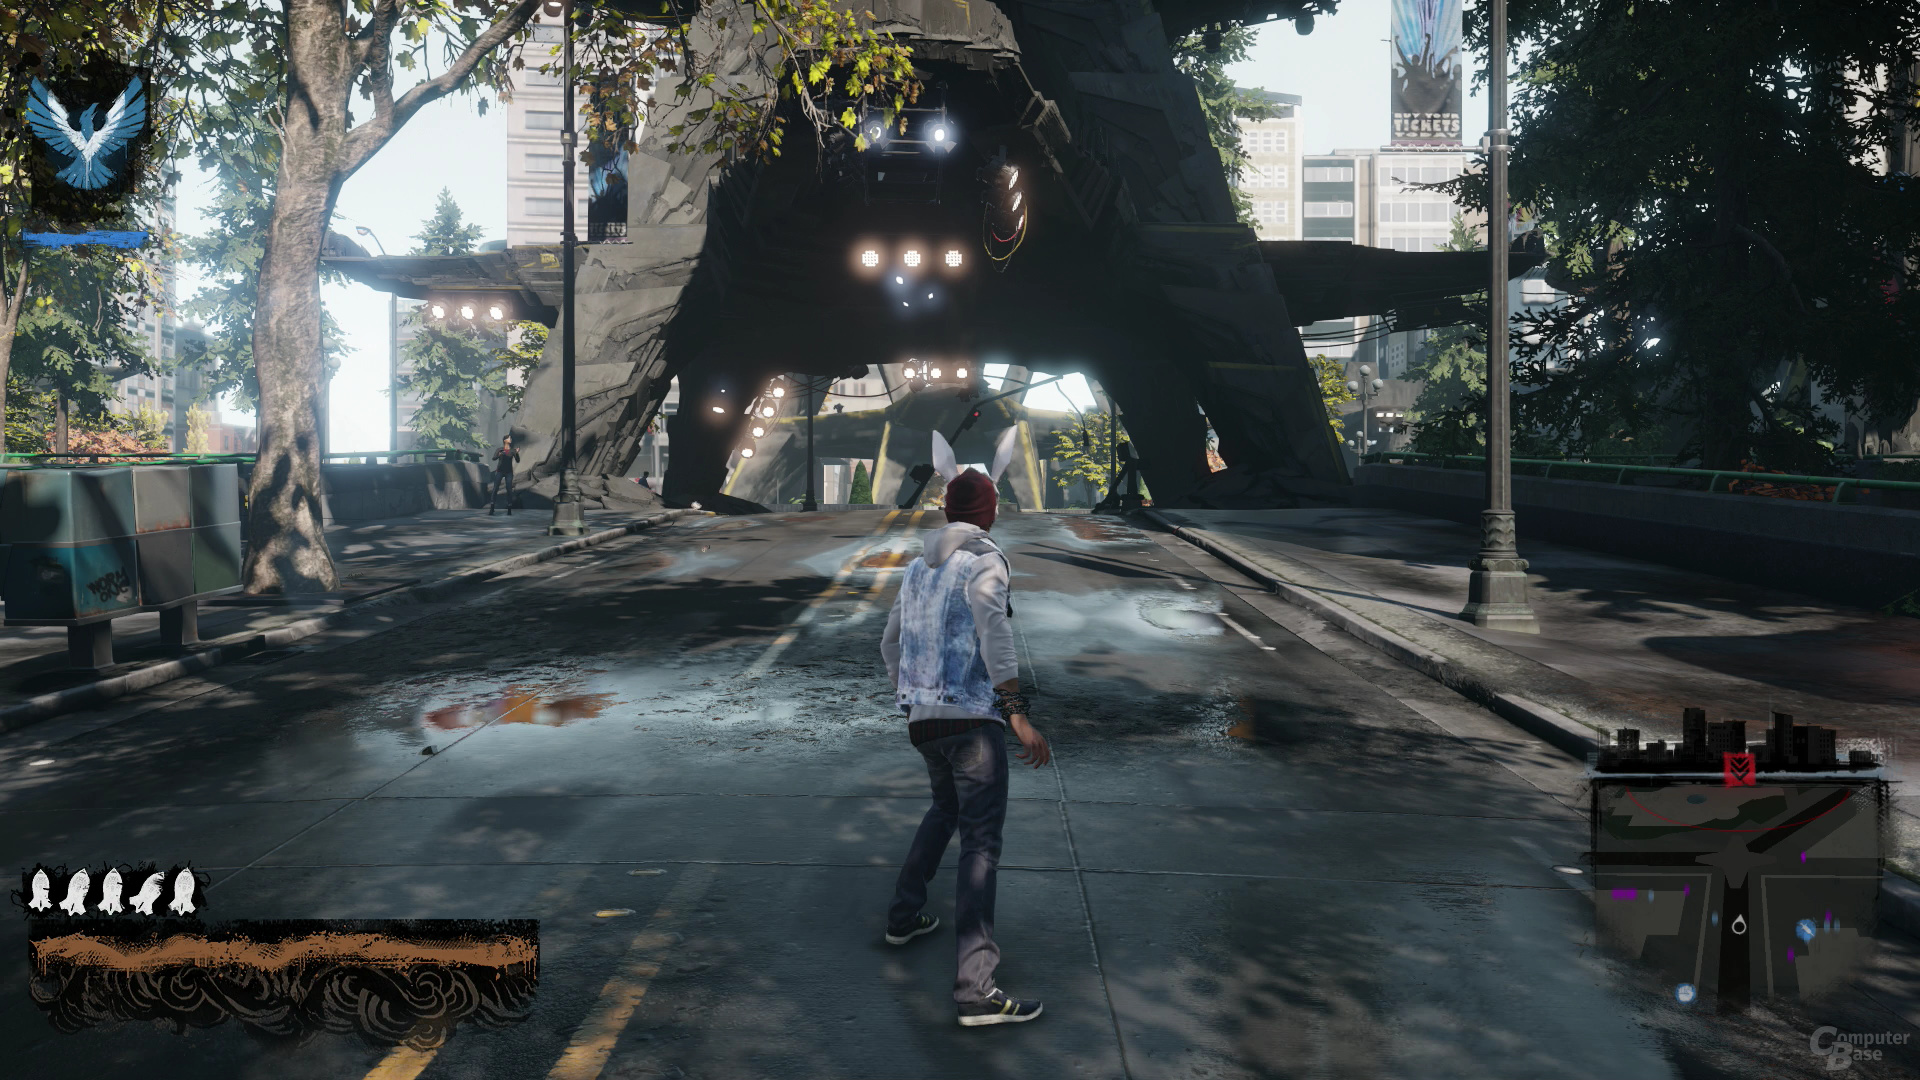 inFAMOUS 3 (PlayStation 4, 2014)